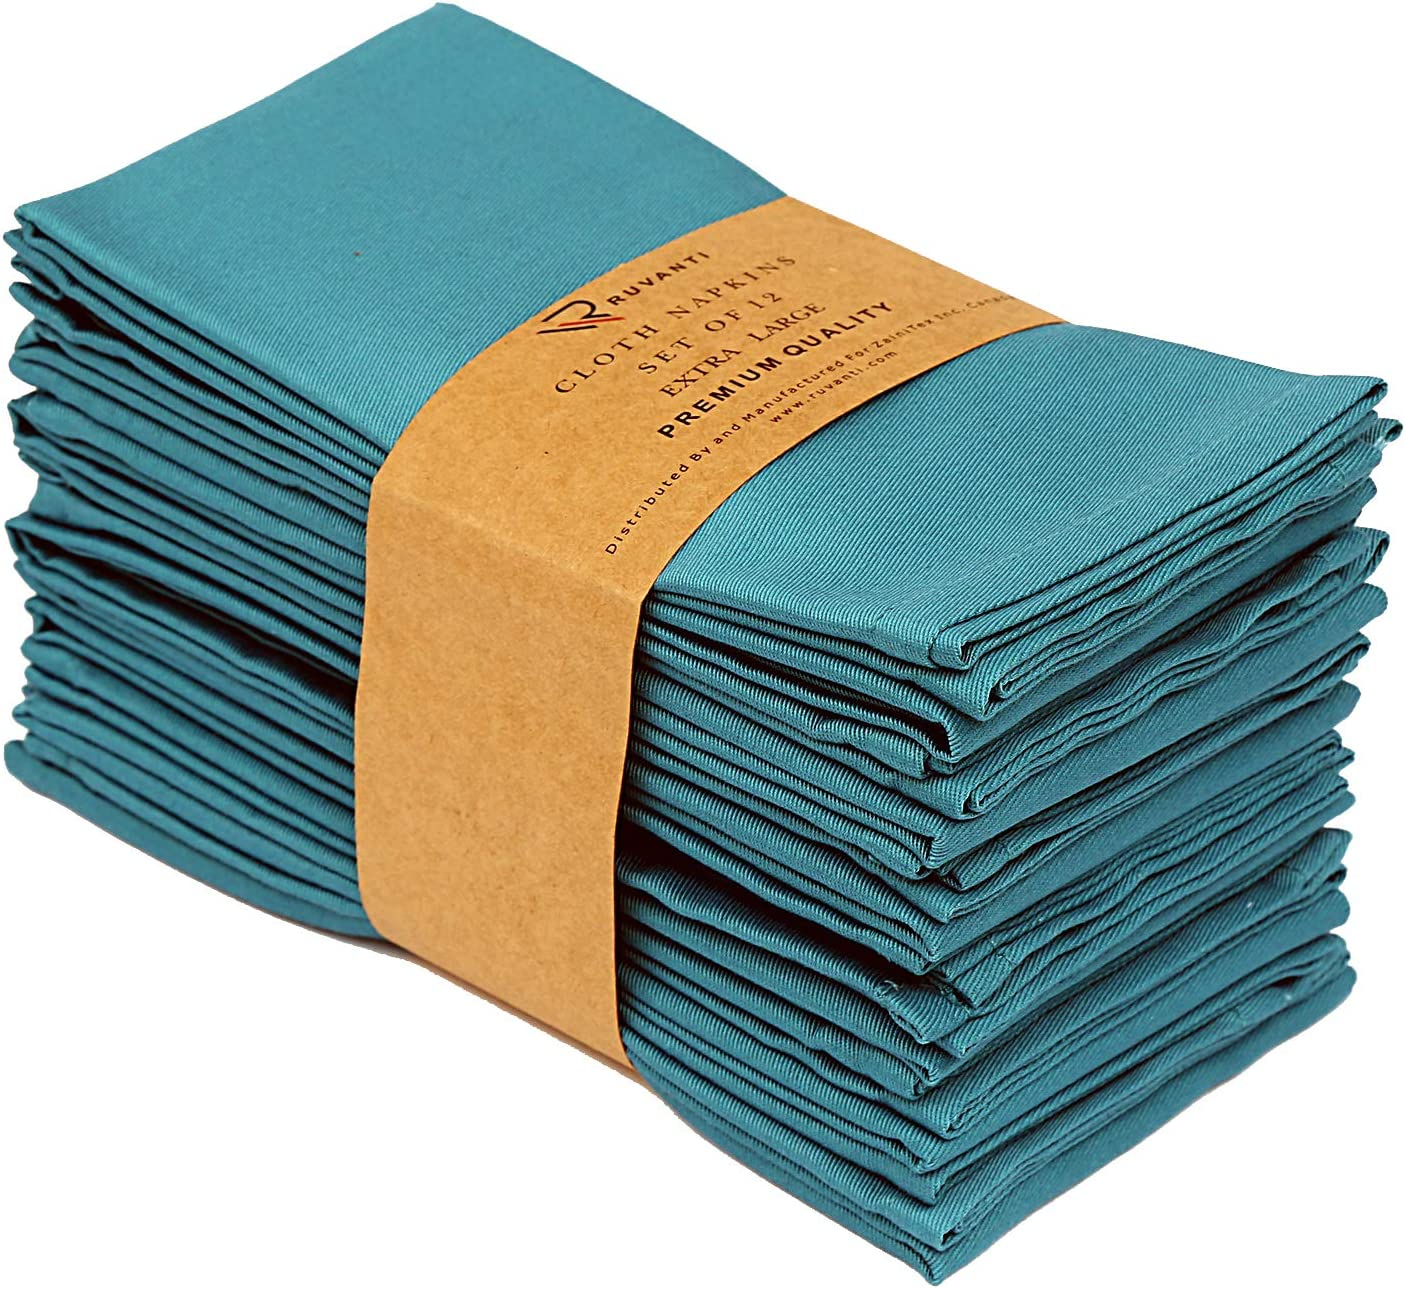 Ruvanti Kitchen Cloth Napkins 12 Pack 18X18 Inch Dinner Napkins Soft & Comfortable Reusable Turquoise Napkins -Durable Linen Napkins - Perfect Table Napkins / Teal Napkins for Family Dinners, Weddings